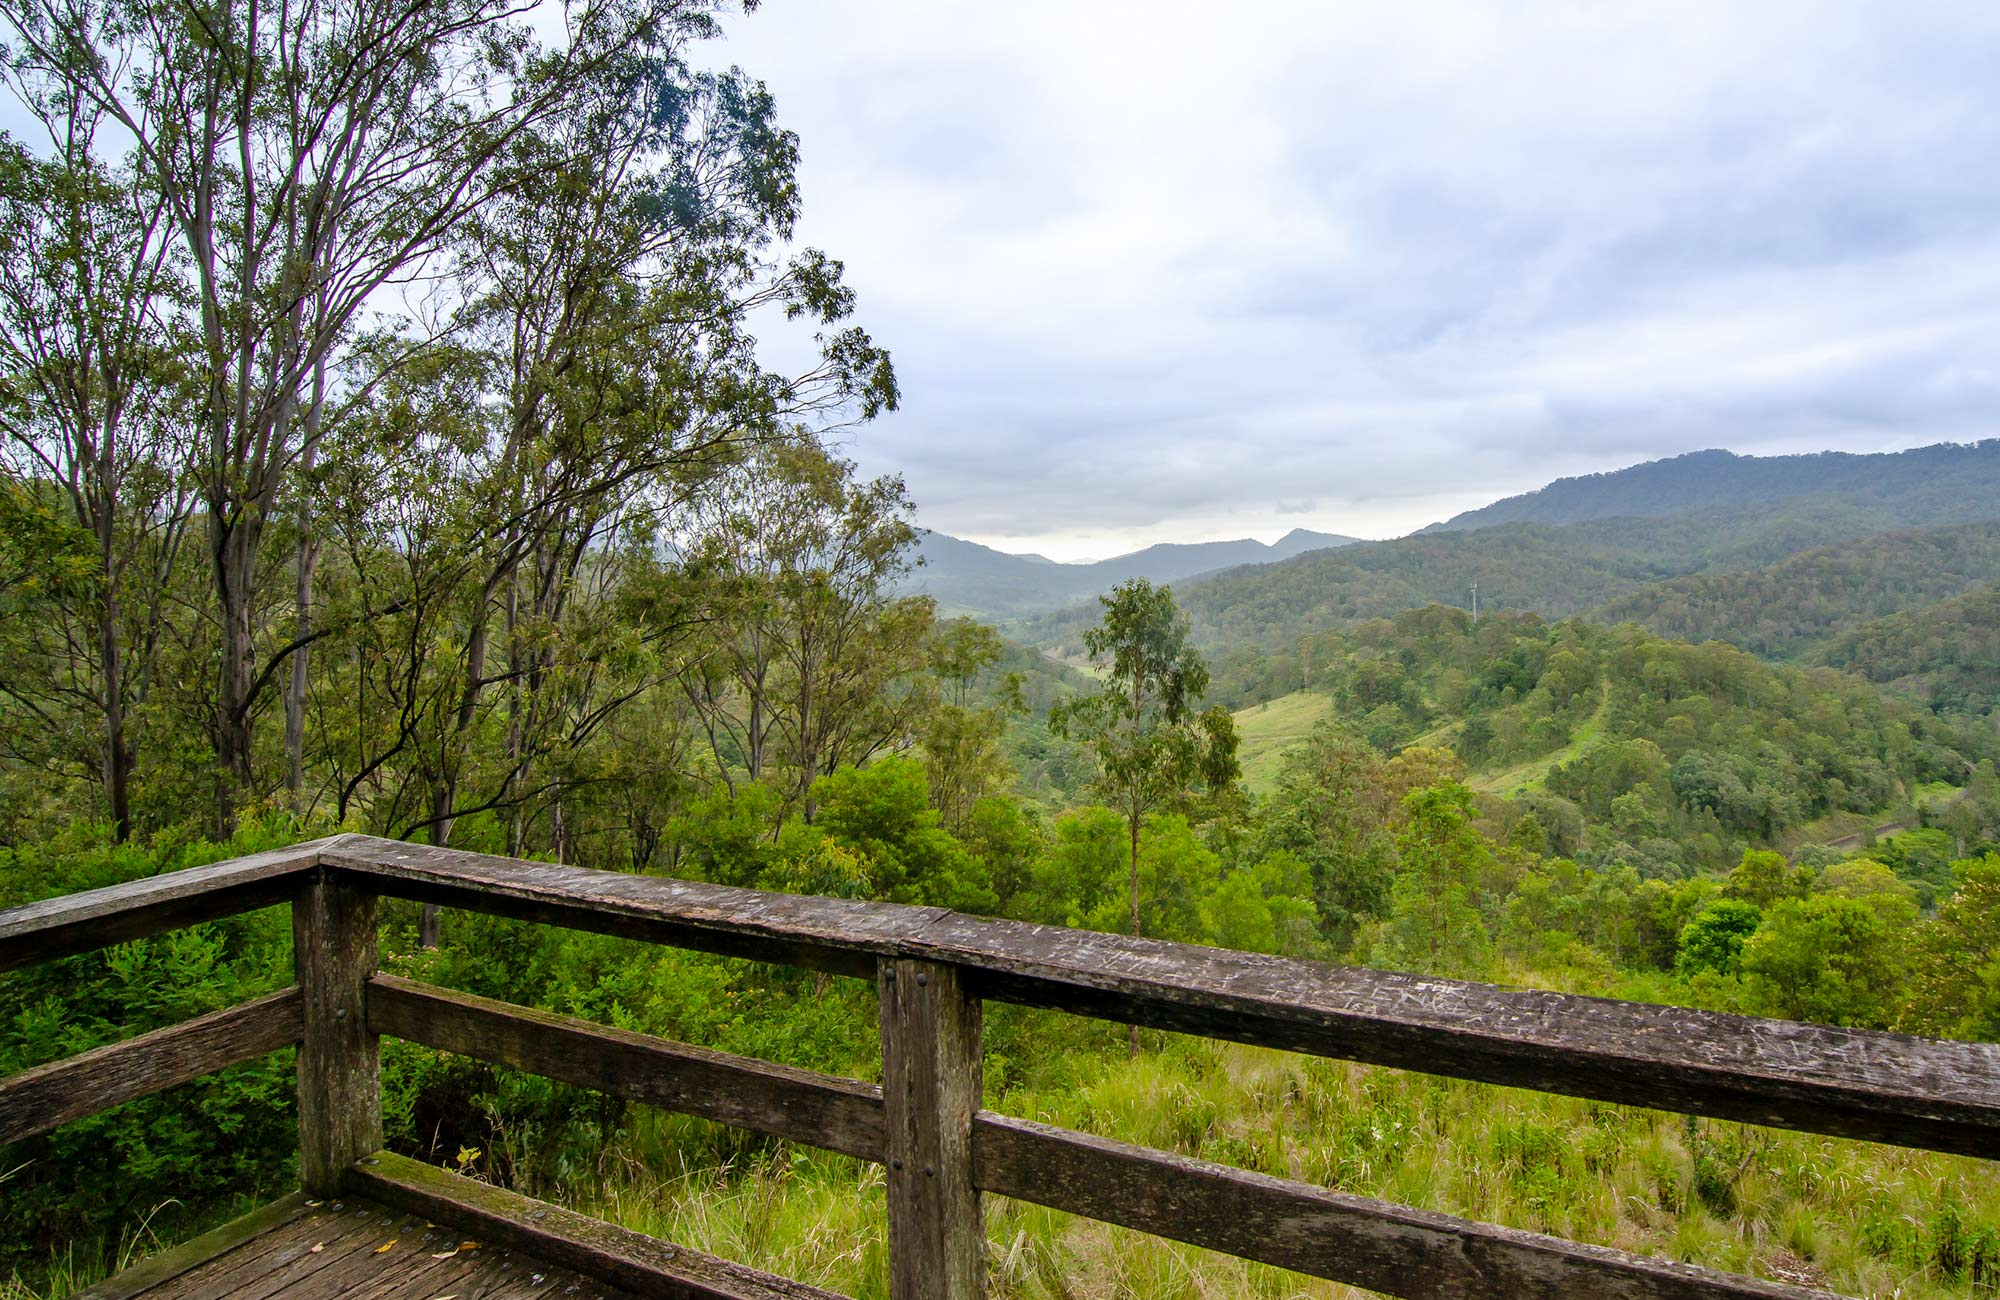 Views of Gradys Creek valley from Border loop lookout in Border Ranges National Park. Photo credit: John Spencer © DPIE